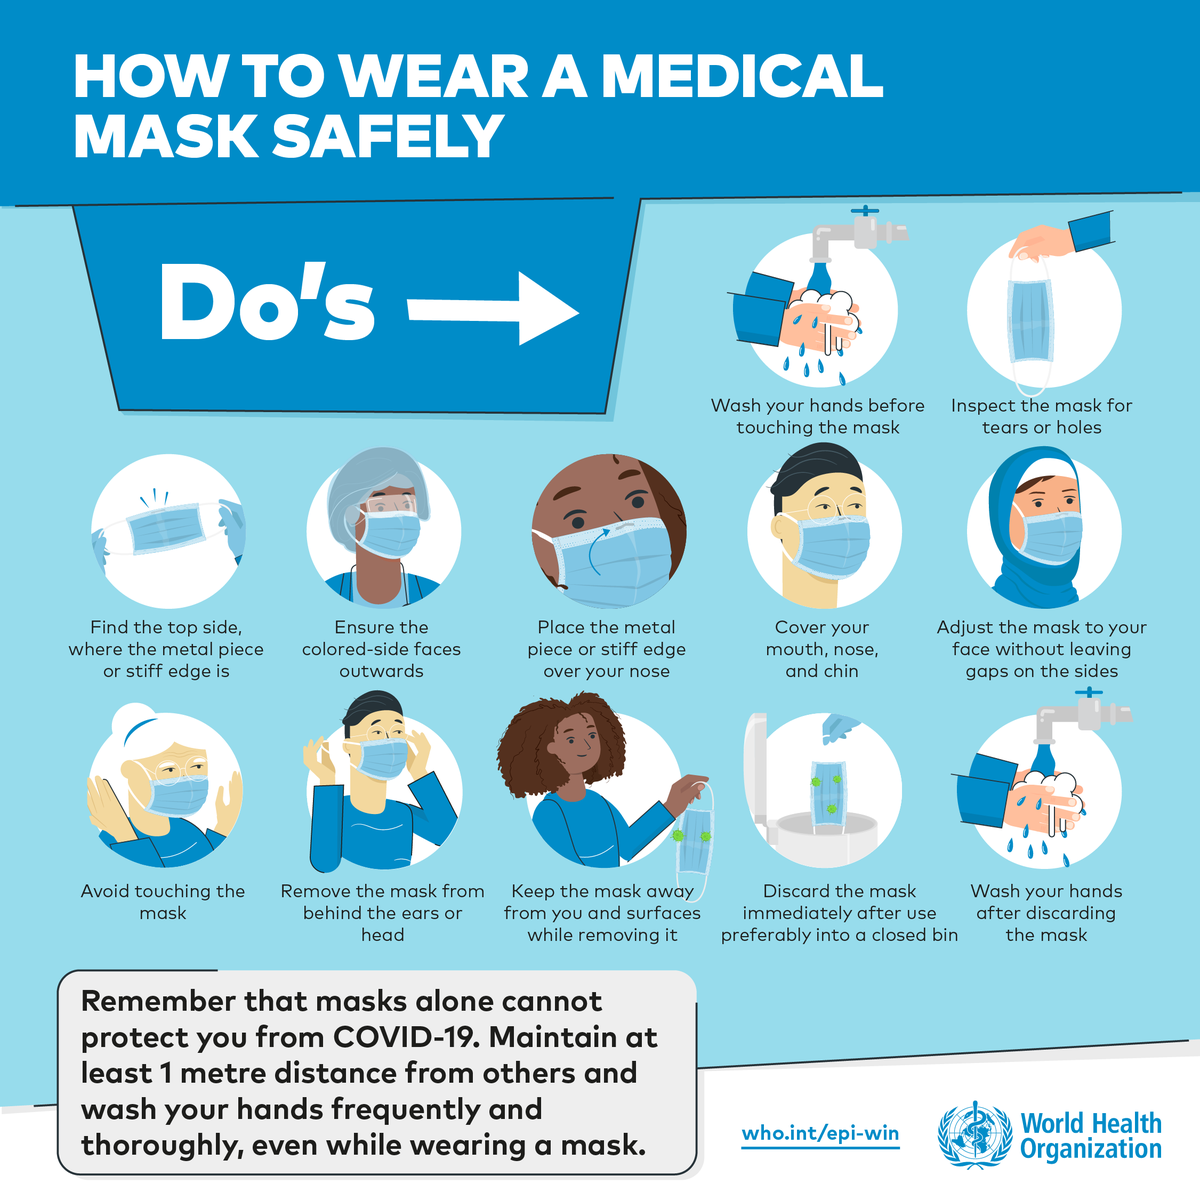 😷 How to wear a medical mask safely: Do's More: bit.ly/2TcBG0Q #COVID19 #WearAMask